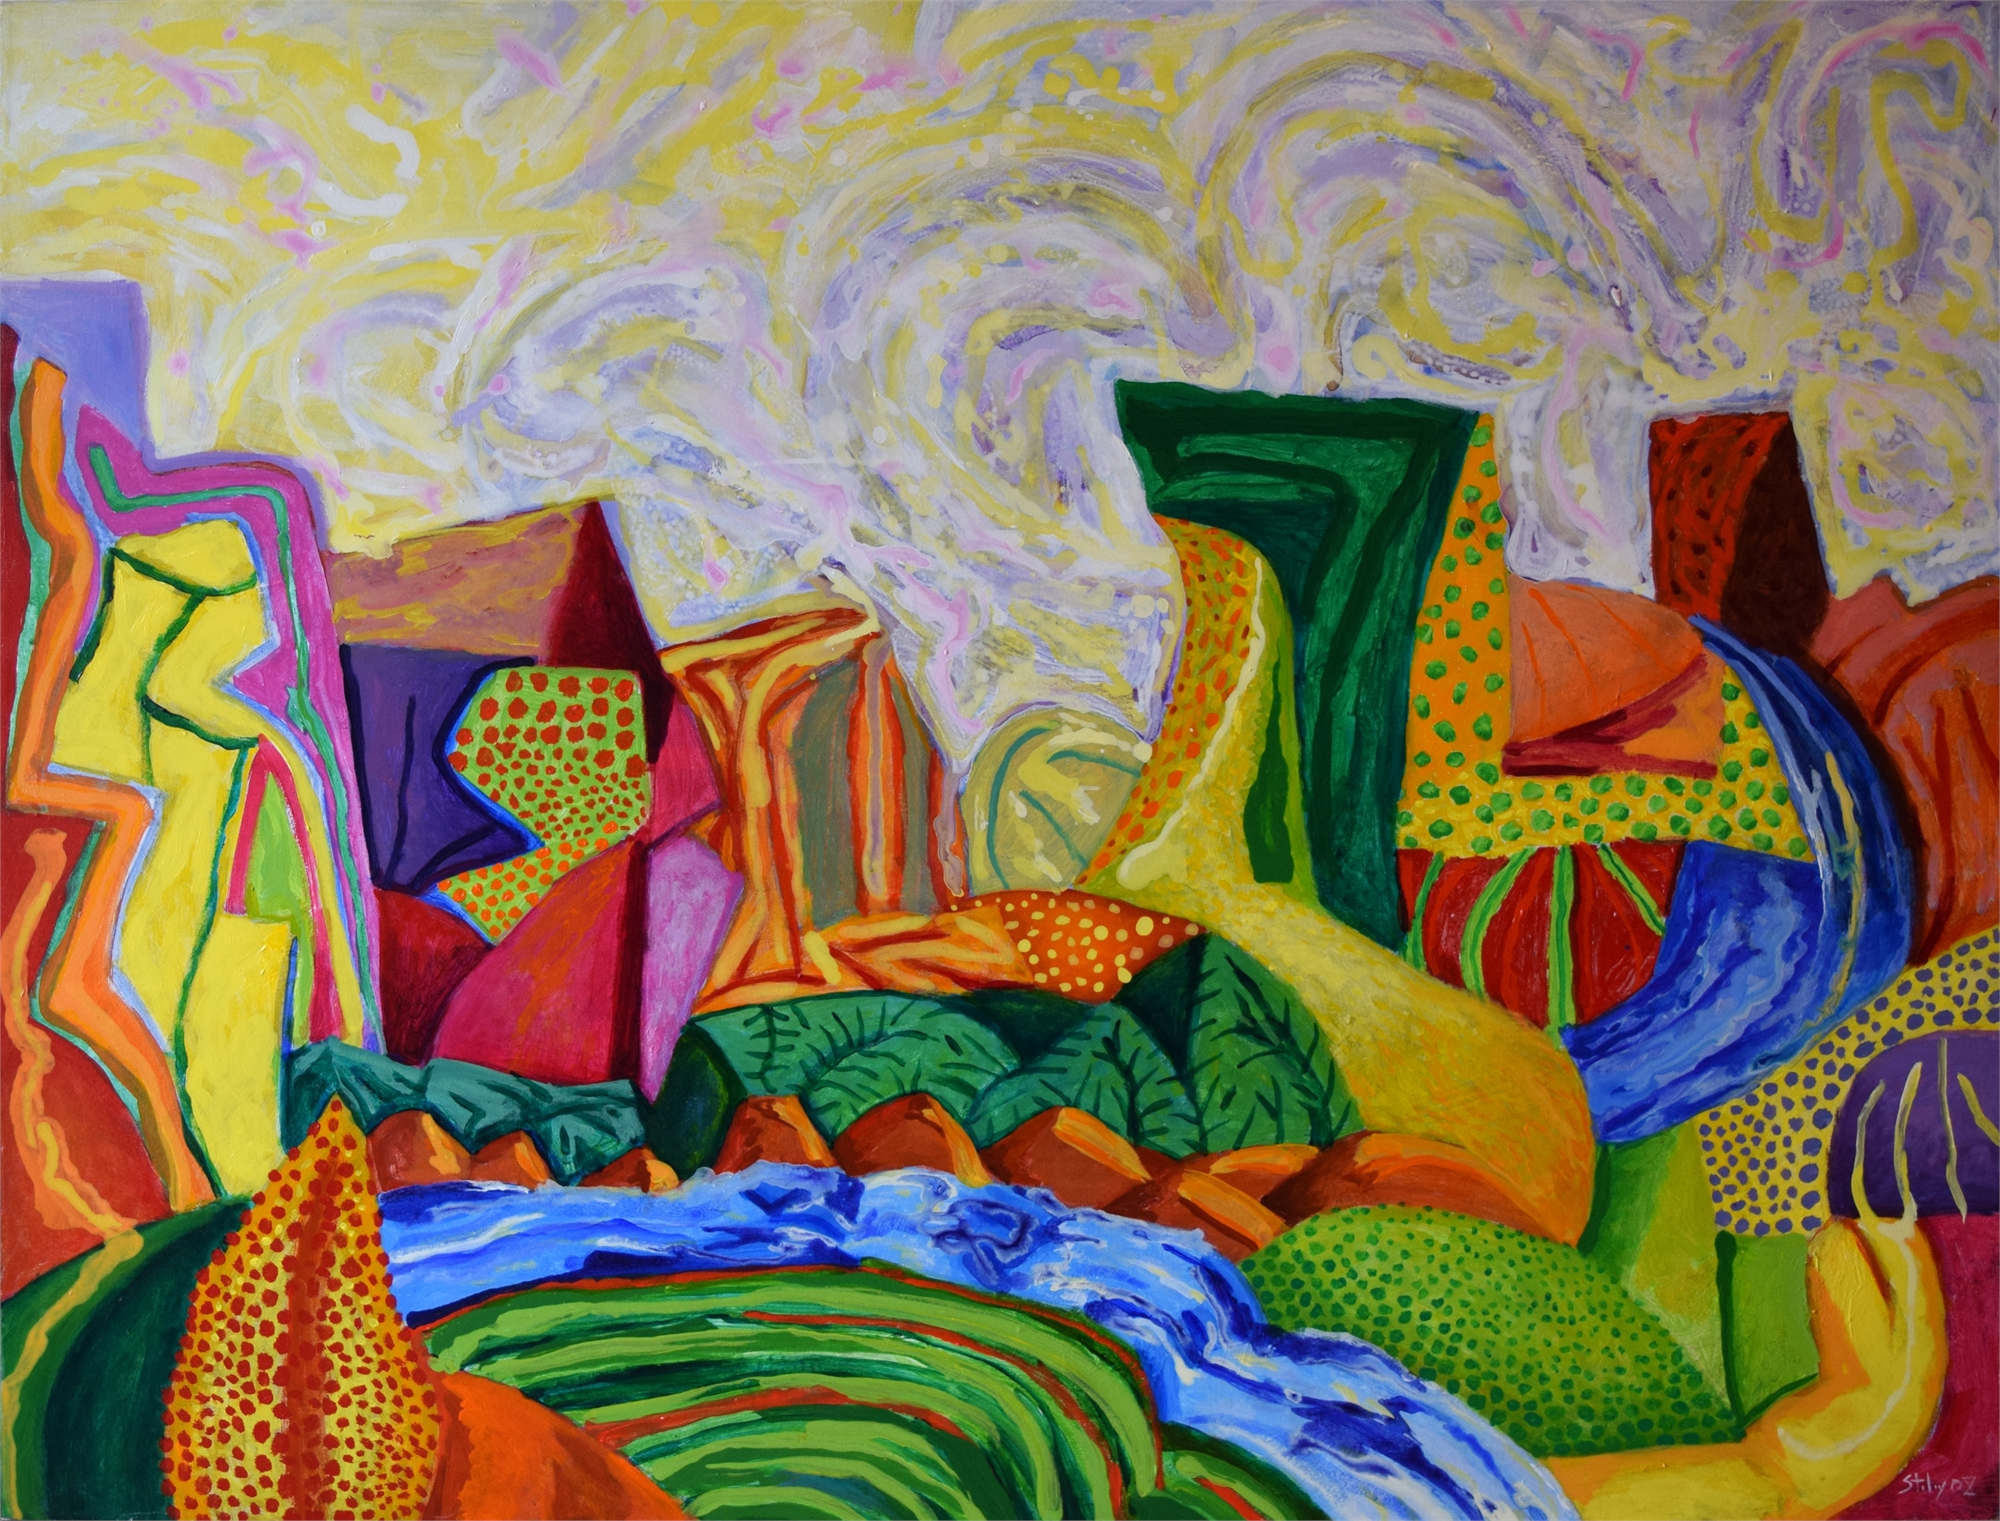 Canyon Passage by Earl Staley